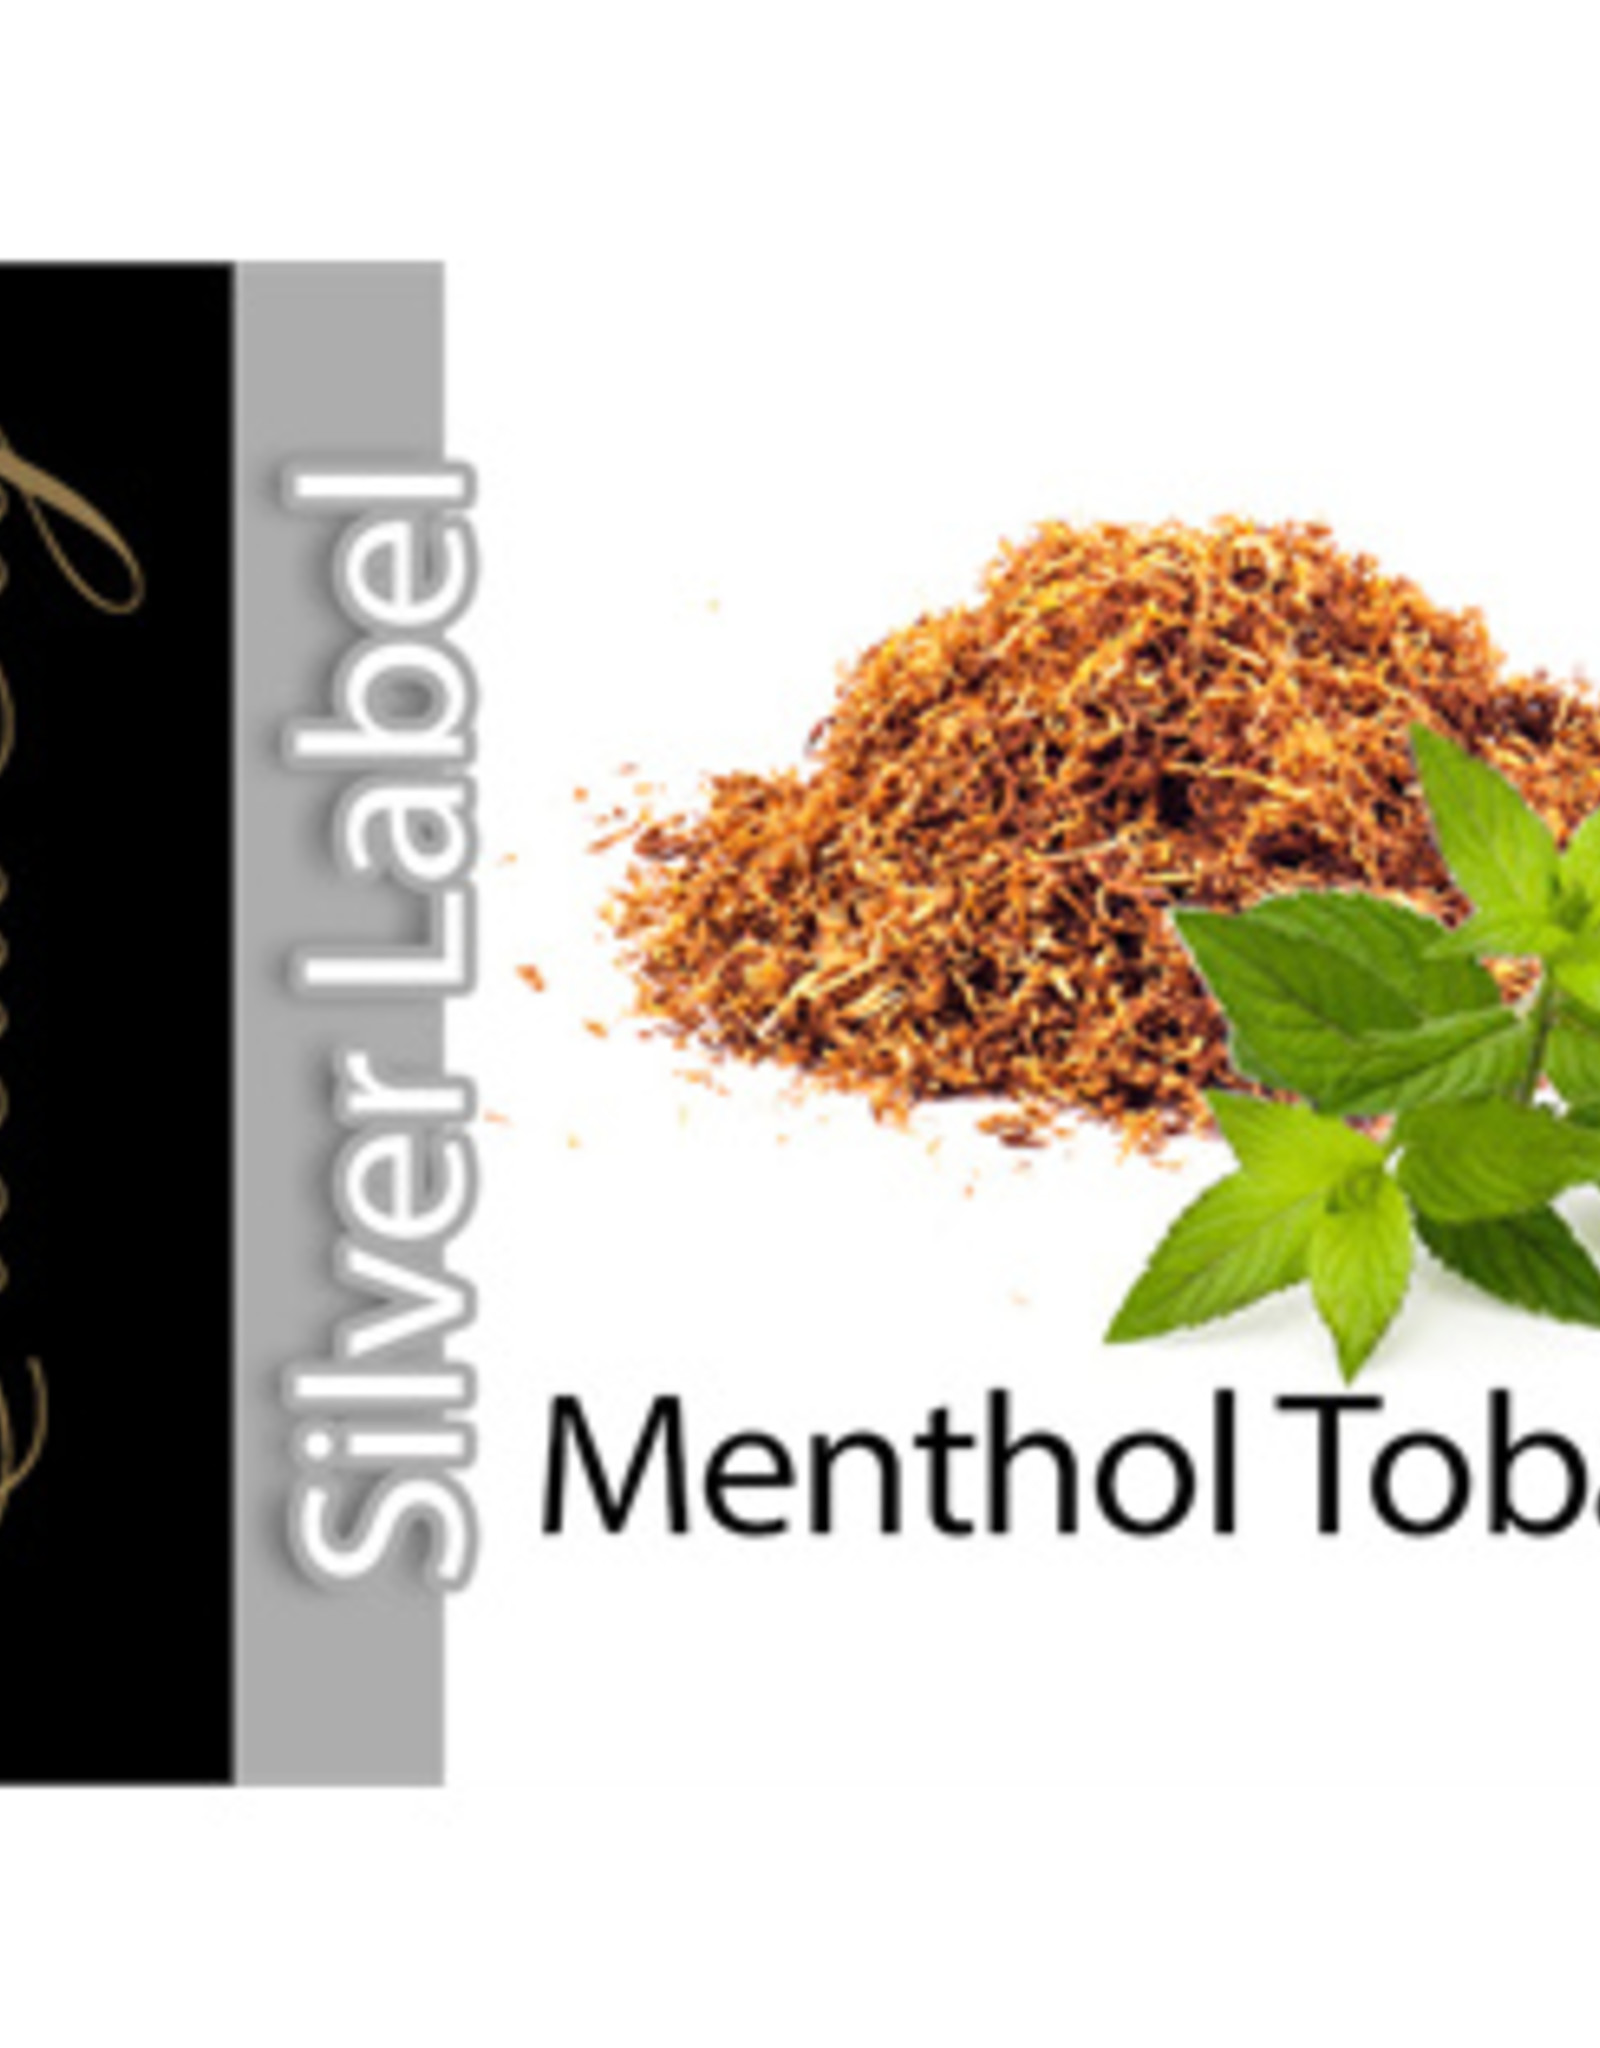 Exclucig Exclucig Silver Label E-liquid Menthol Tobacco 18 mg Nicotine